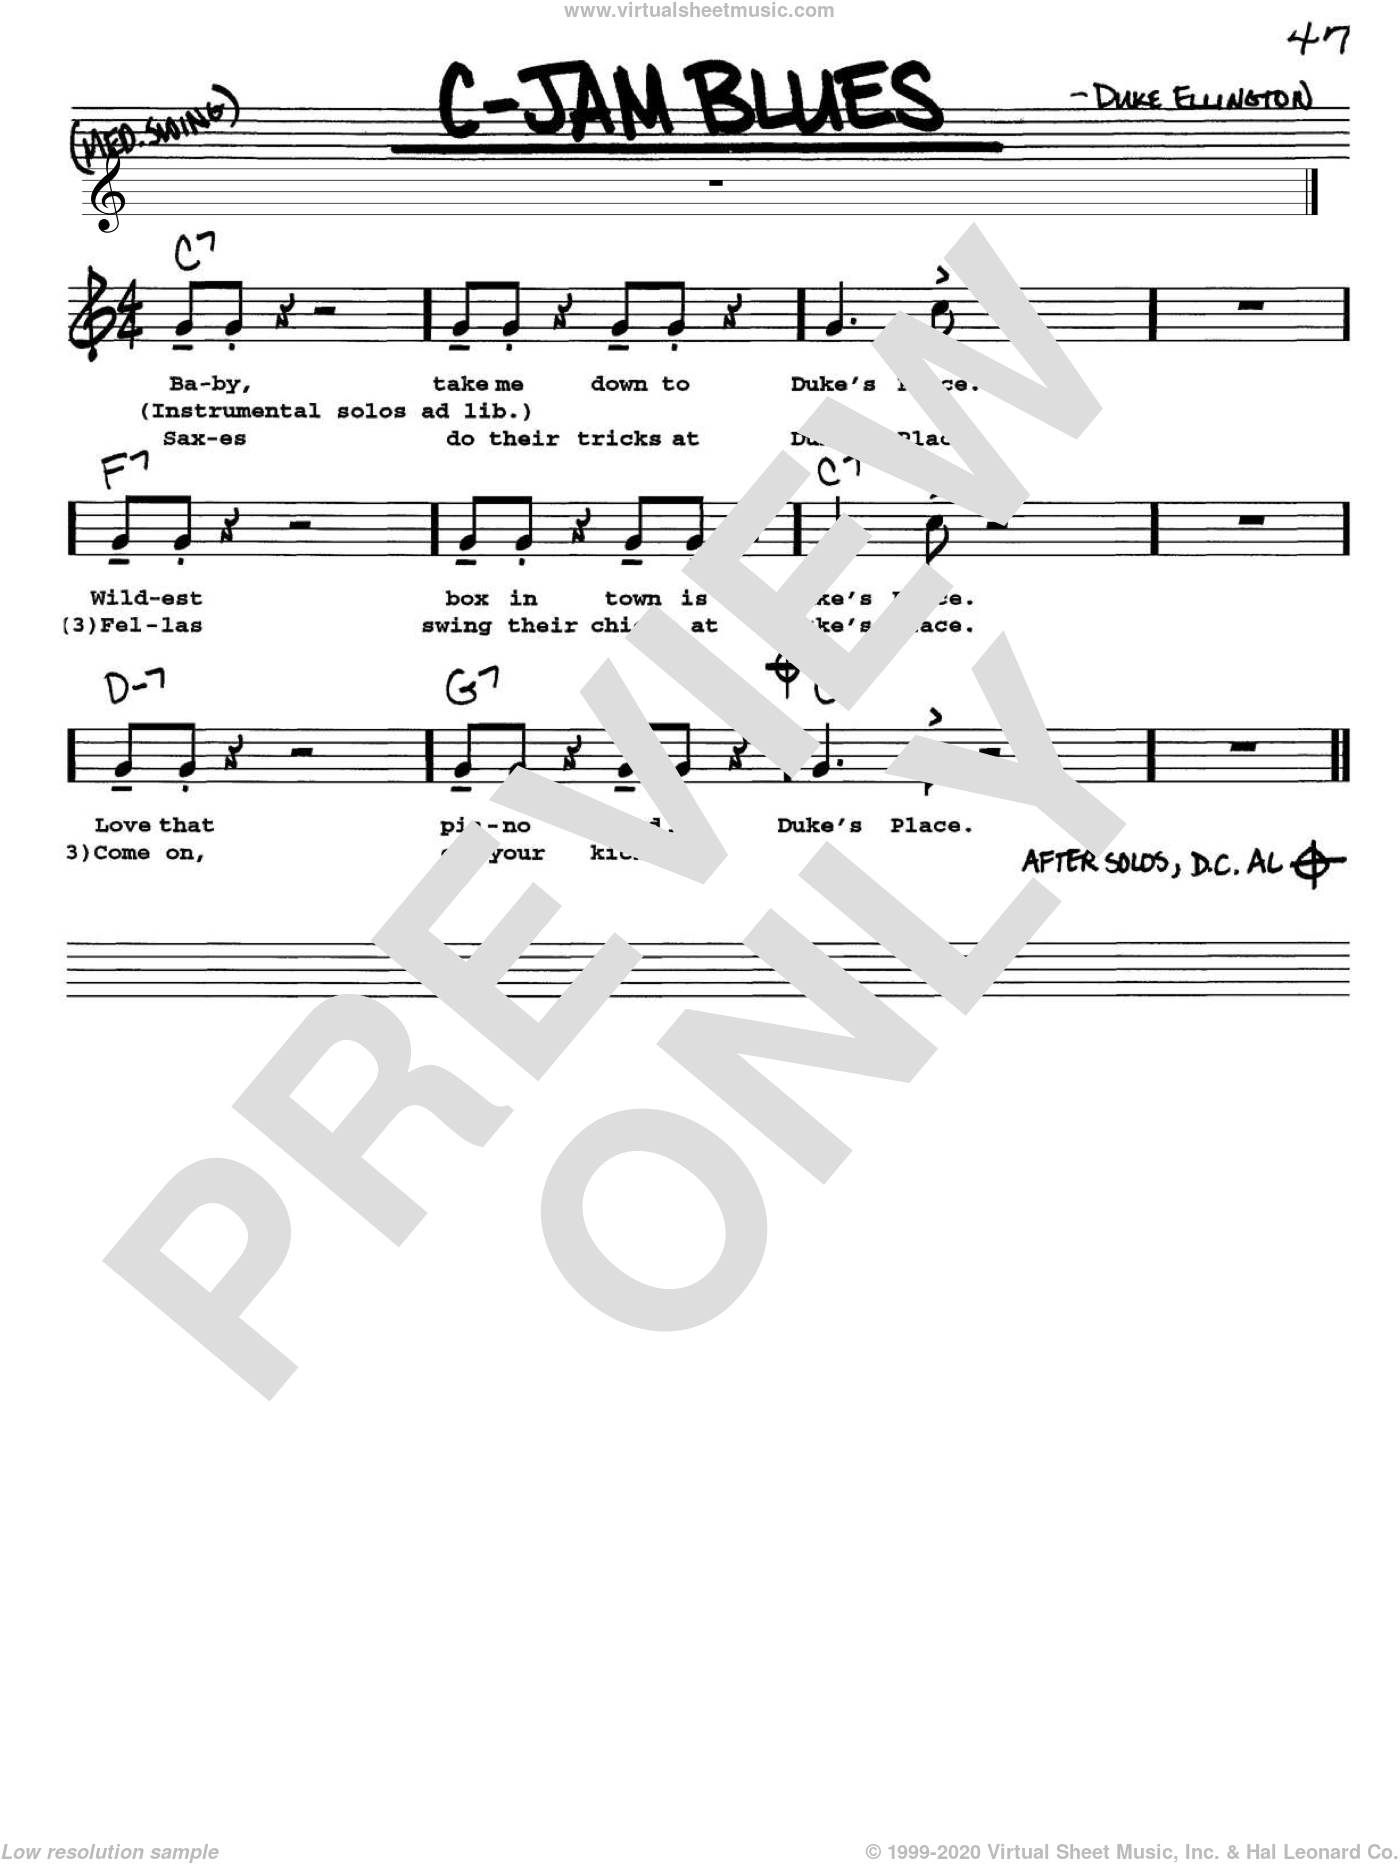 C-Jam Blues sheet music for voice and other instruments  by Duke Ellington, intermediate skill level